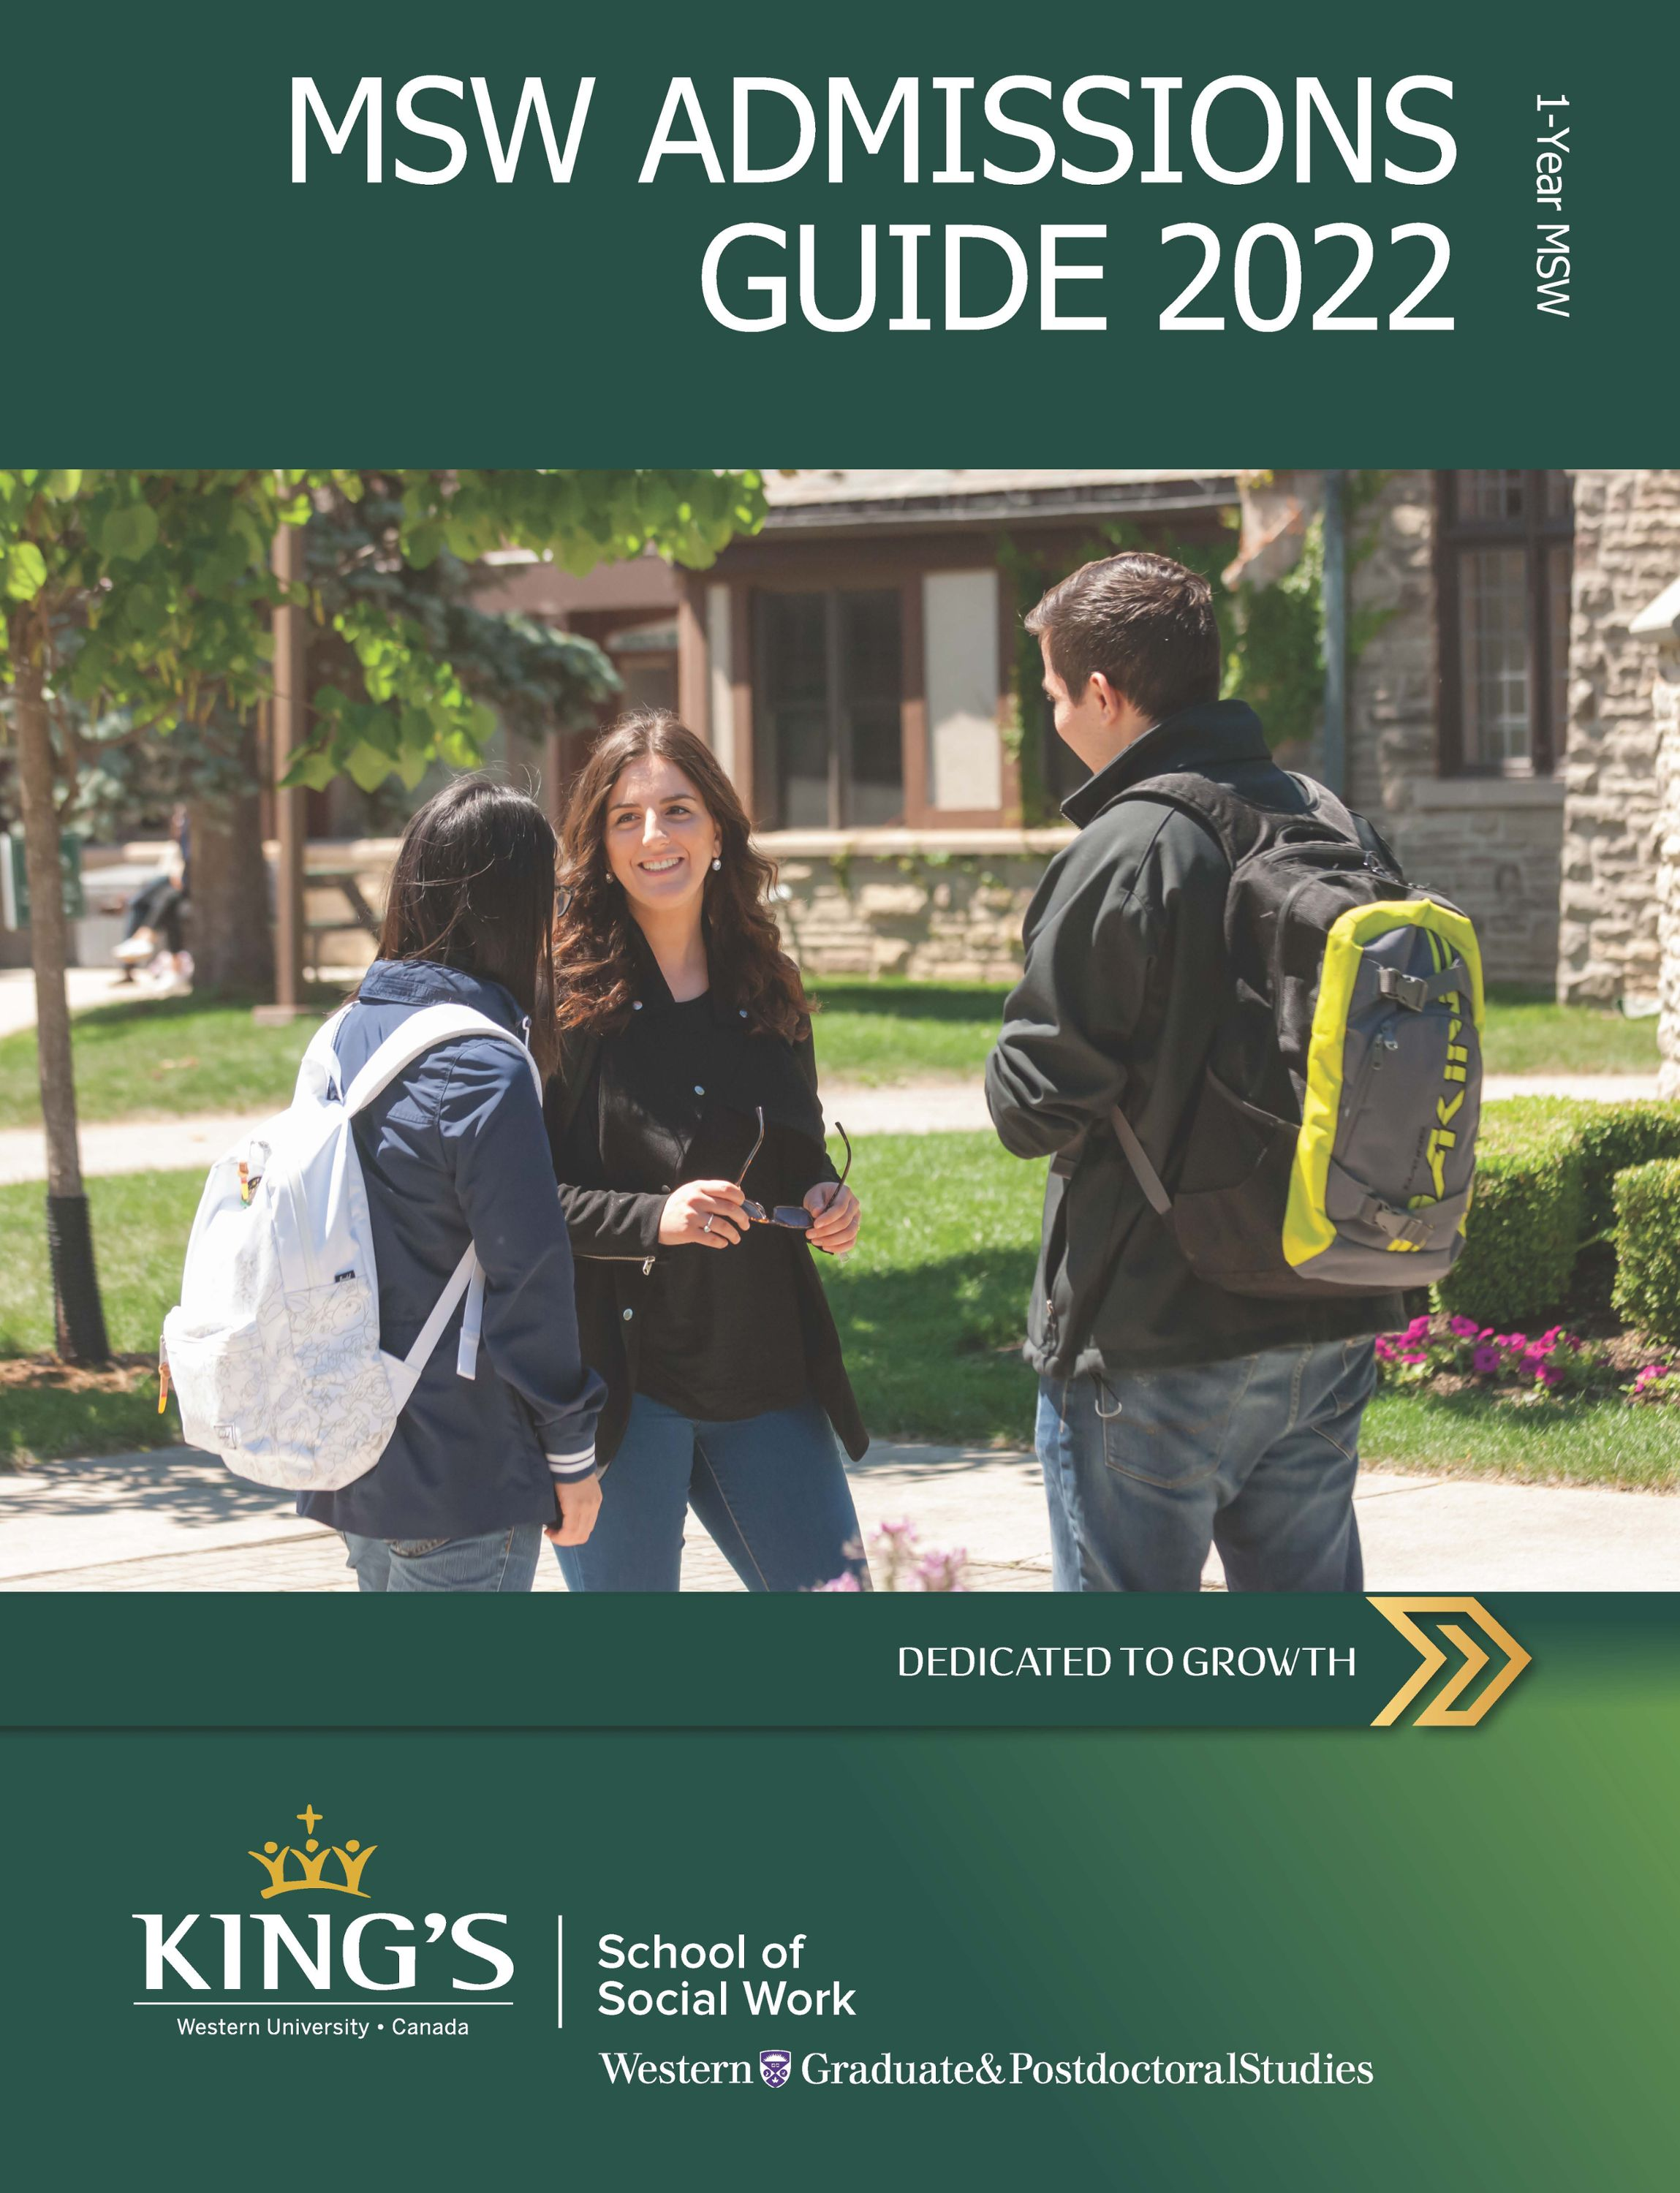 1-Year MSW Admissions Guide Download